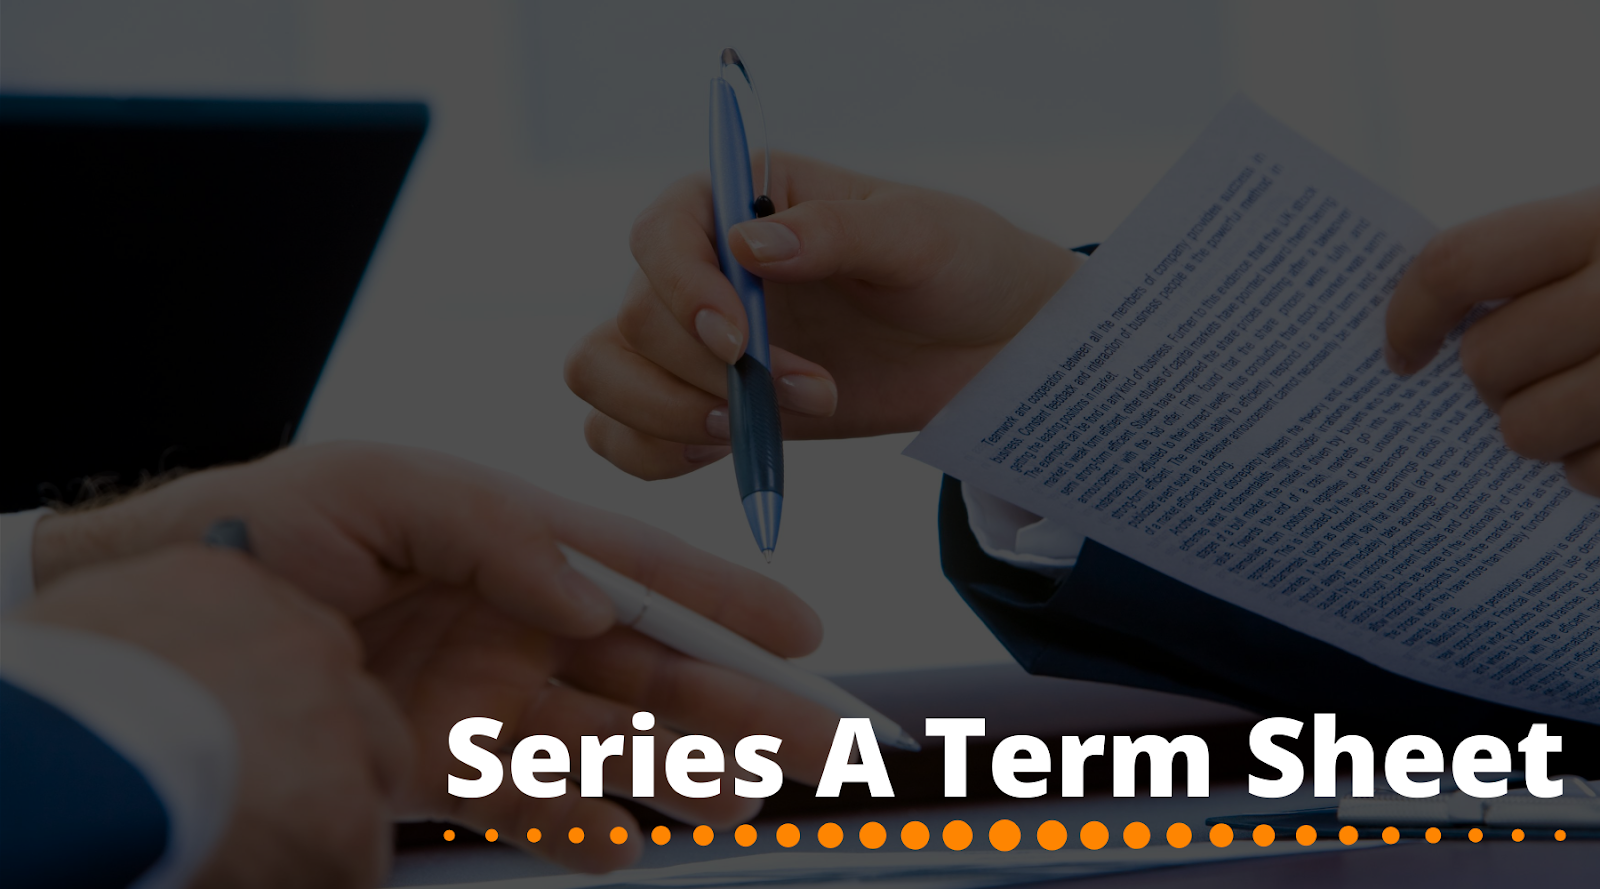 A guide to Series A term sheet – parameters, template and how to create one